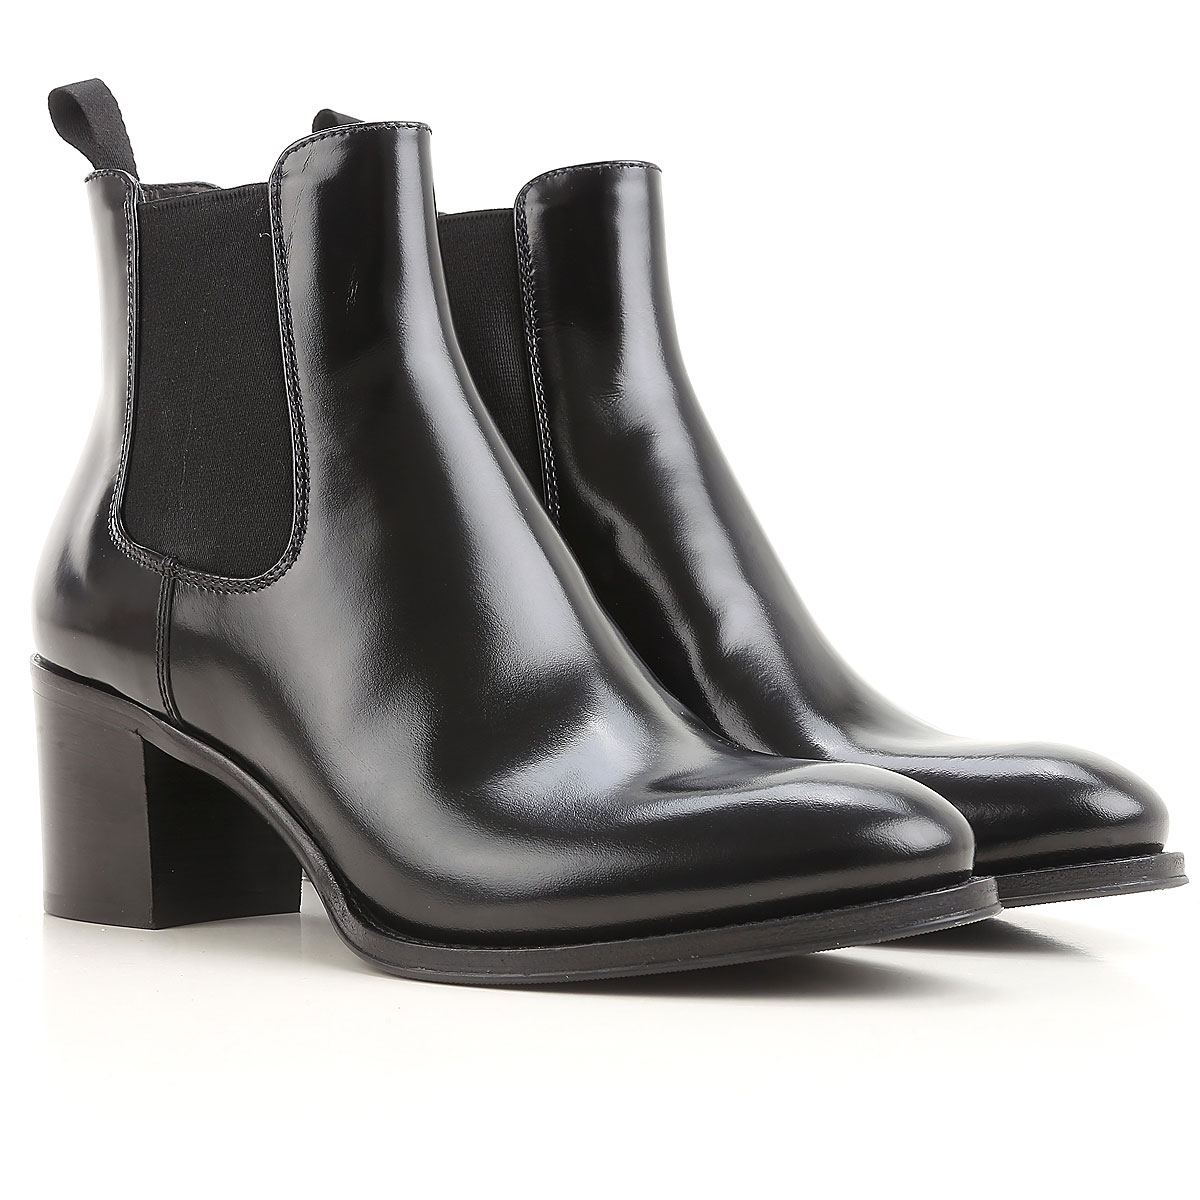 Image of Church's Boots for Women, Booties, Black, Leather, 2017, 10 5.5 6.5 7 8 8.5 9.5